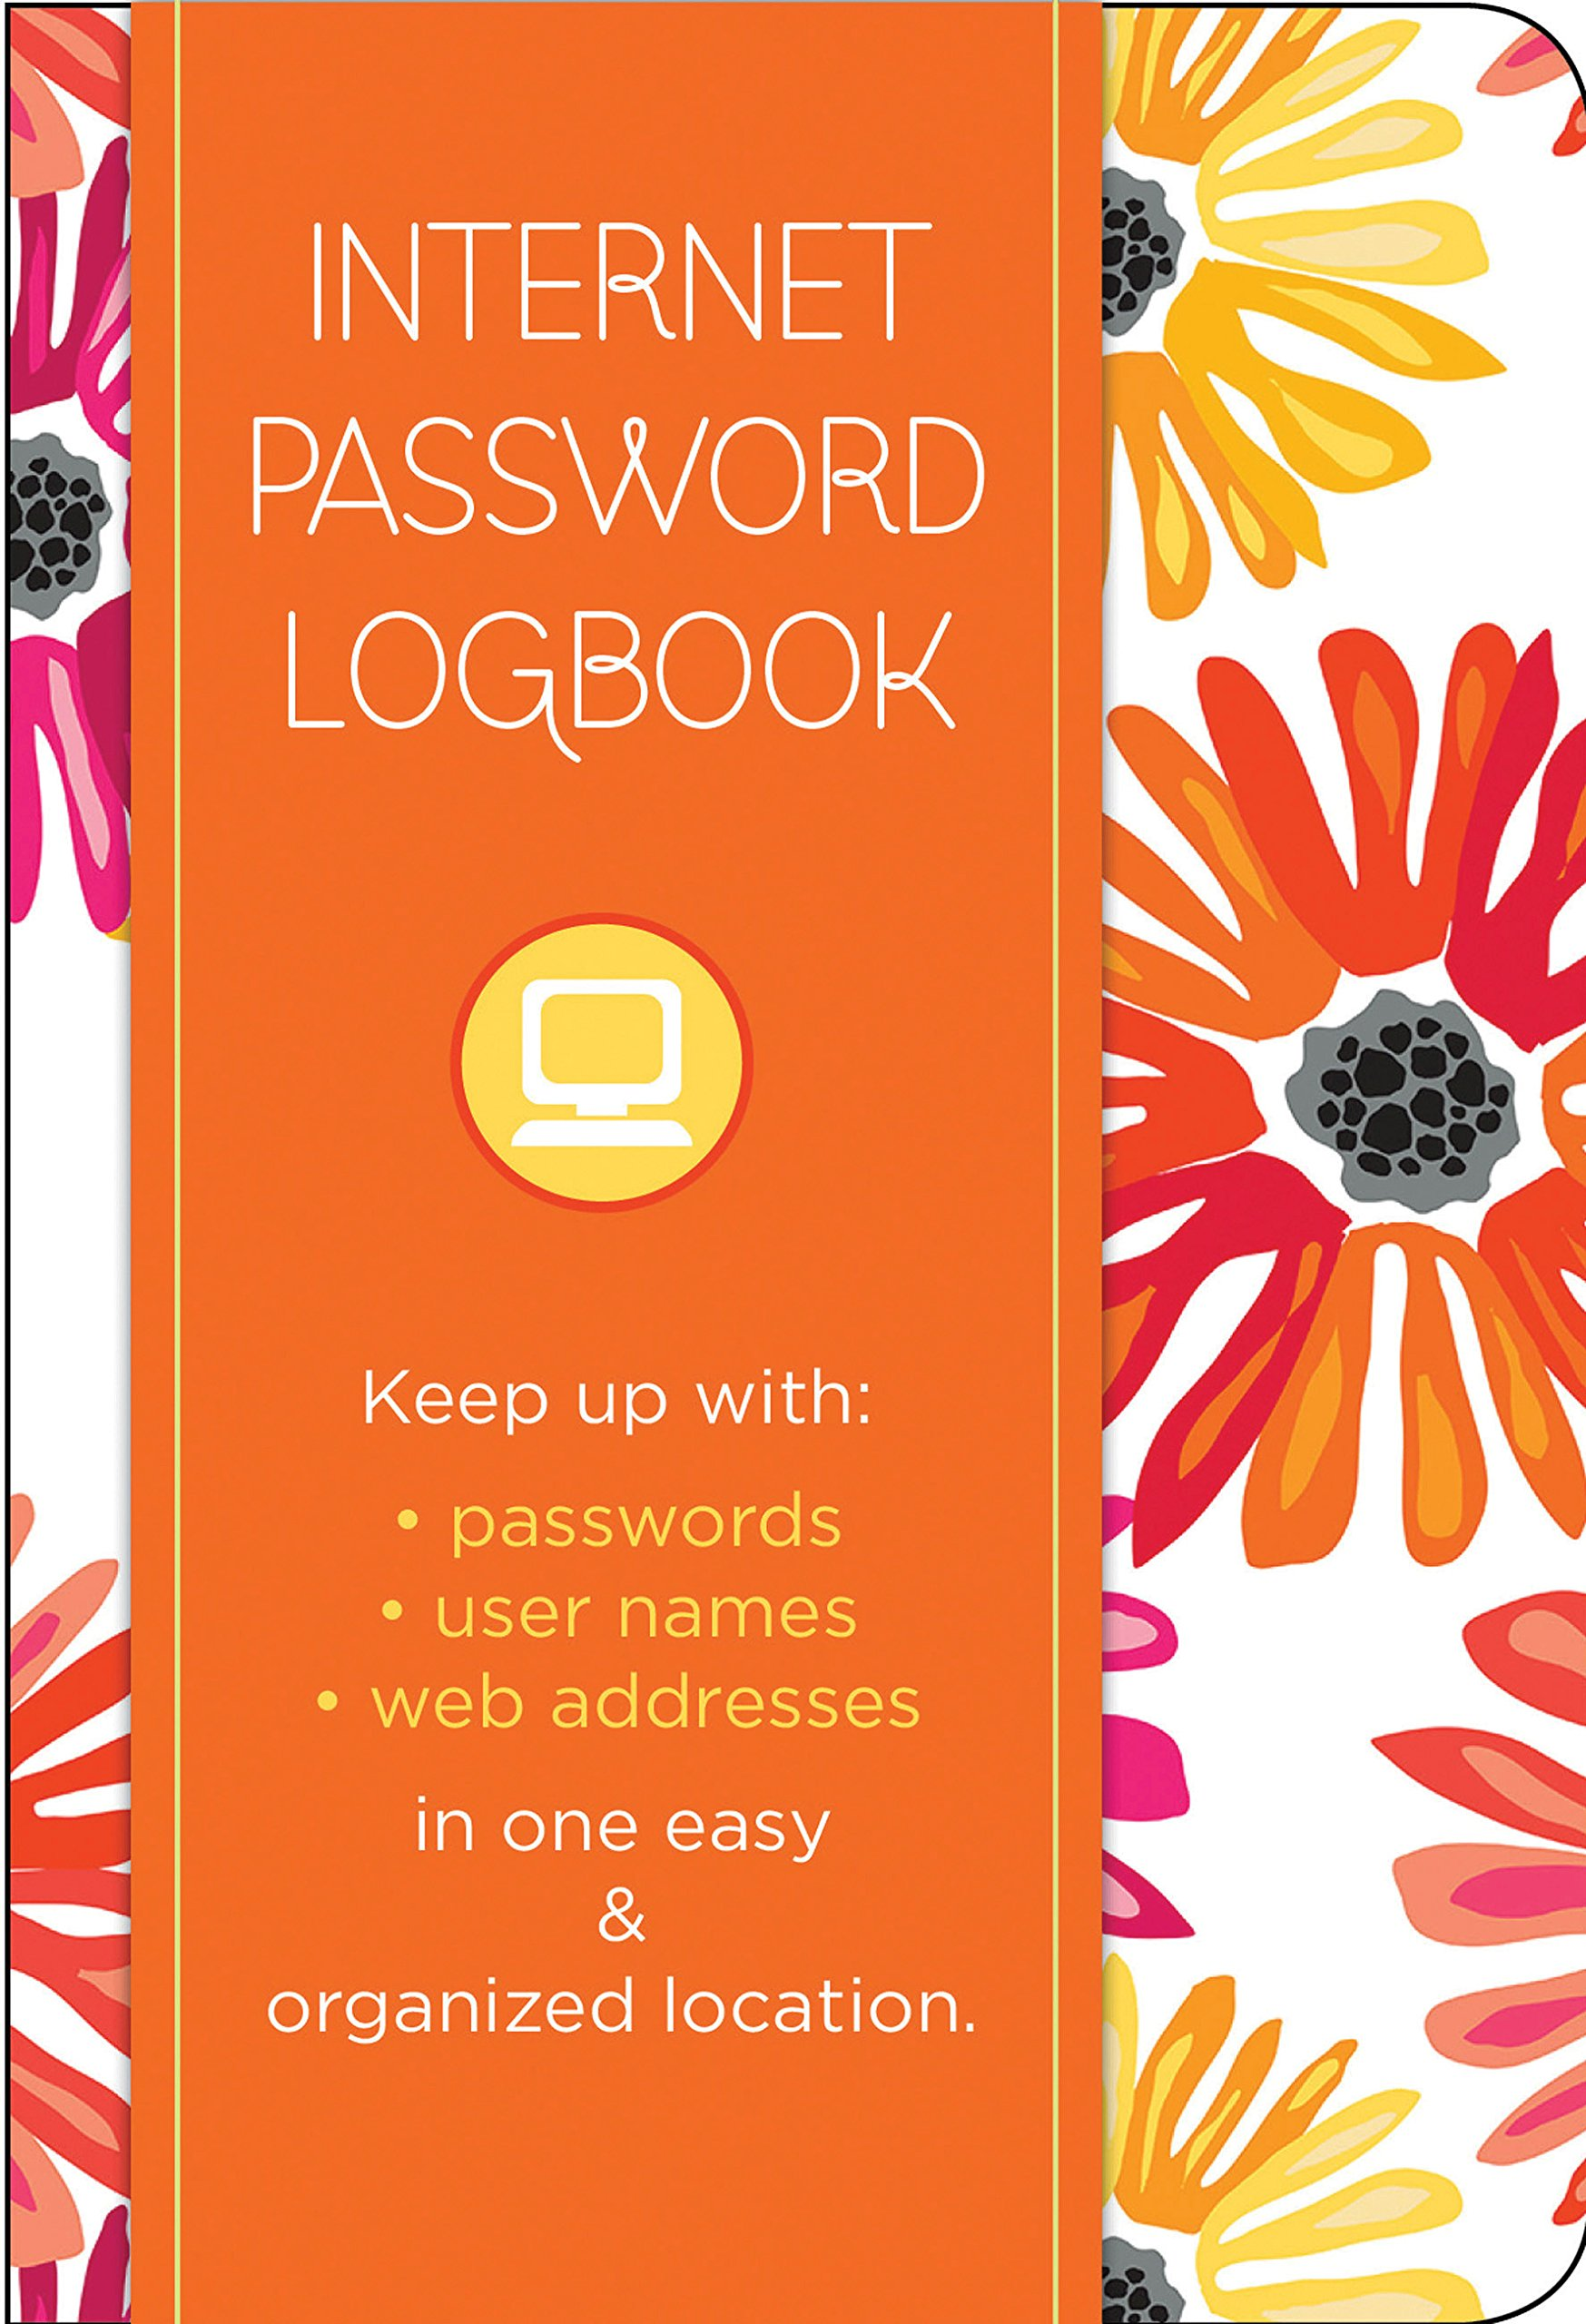 Internet Password Logbook - Botanical Edition: Keep track of: usernames, passwords, web addresses in one easy & organized location ebook